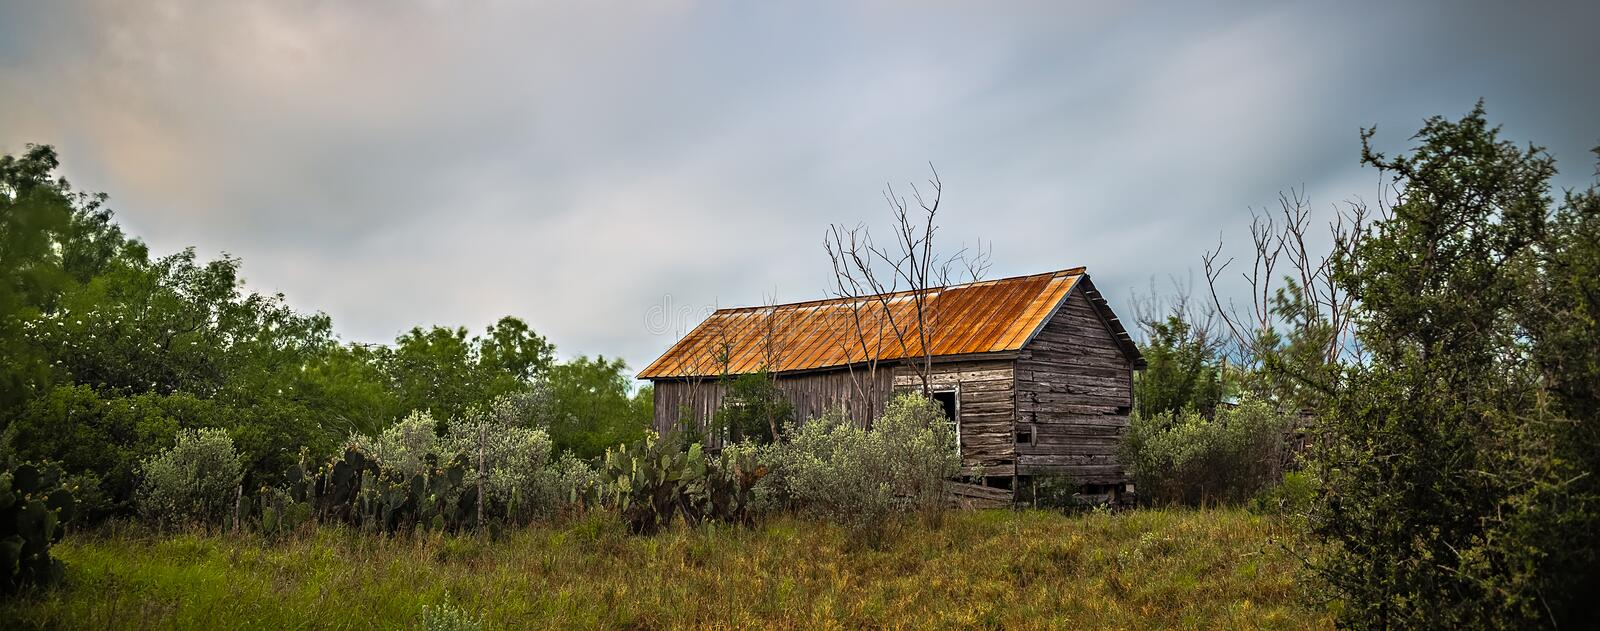 Abandoned log cabin house deep woods in texas royalty free stock photography